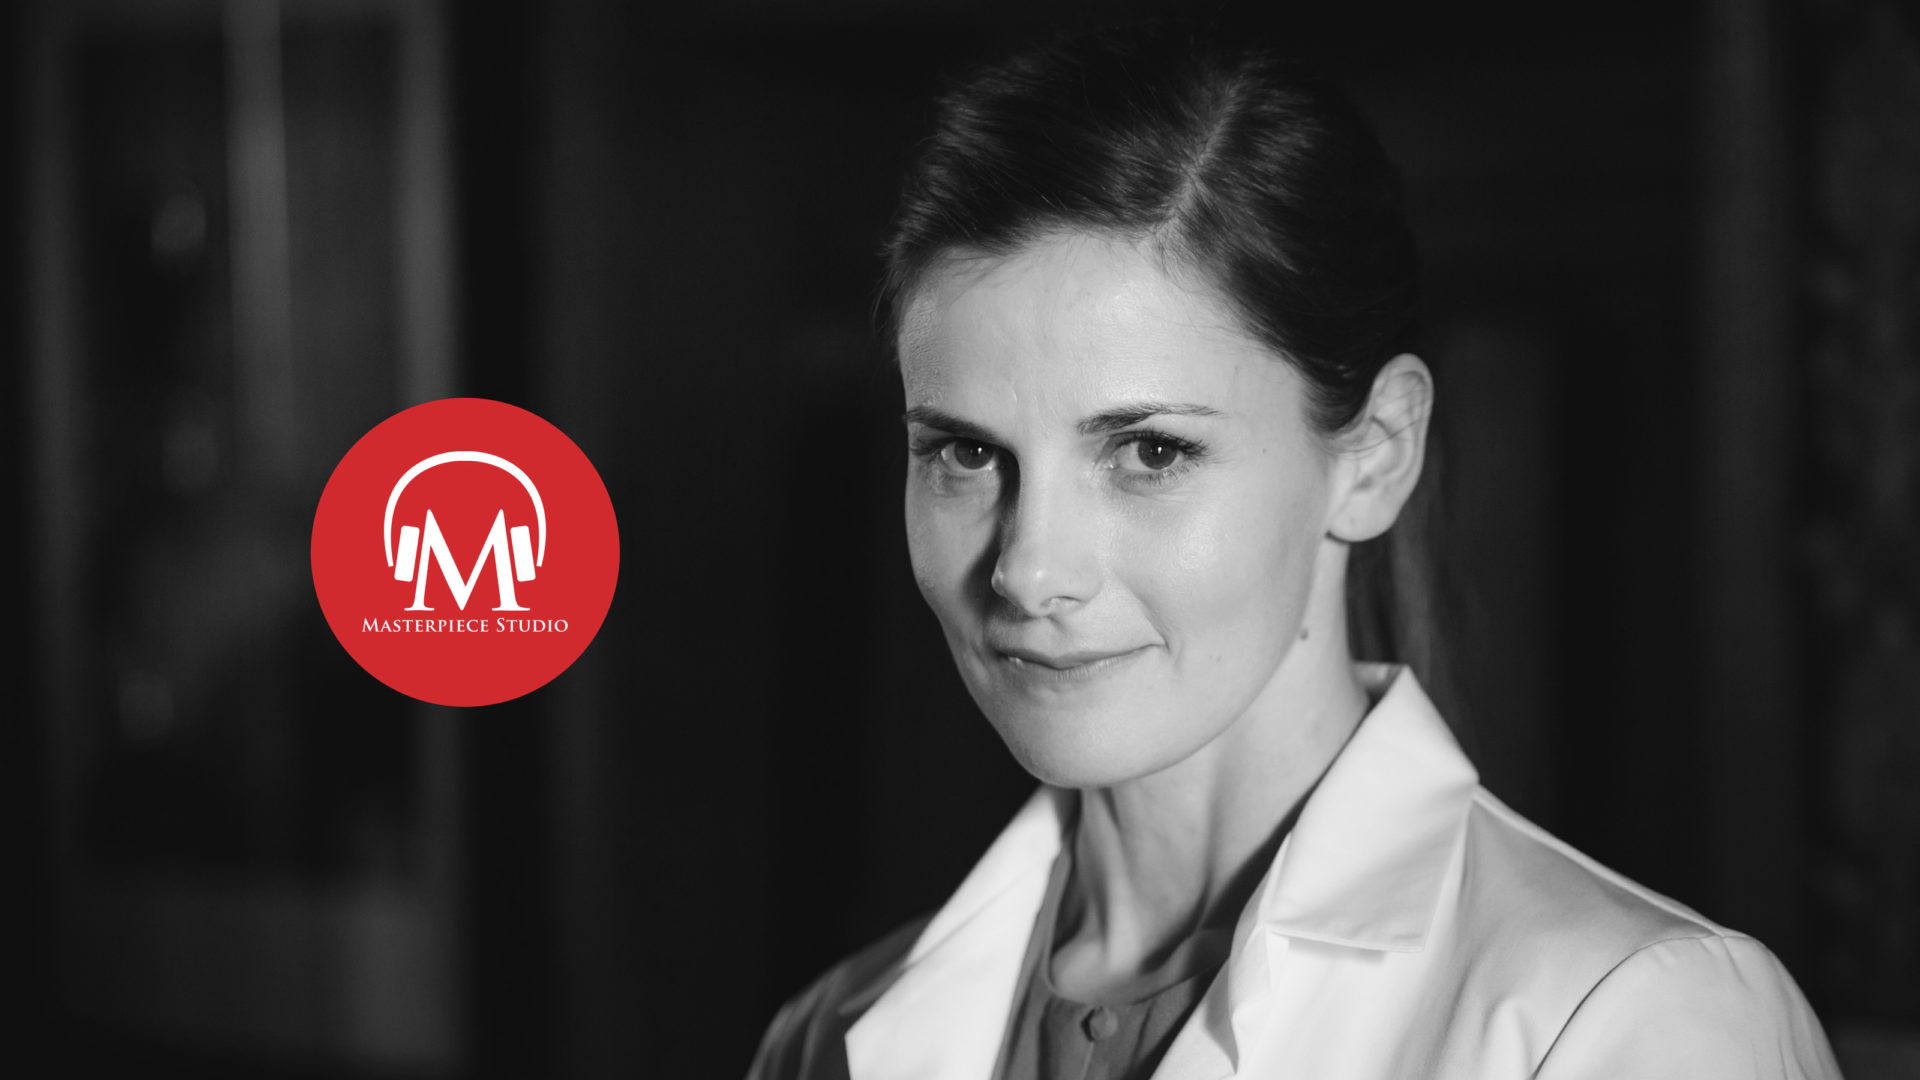 ed6a78ae457 Sherlock's Louise Brealey on Molly, Dogs, and Season 4 | Masterpiece ...